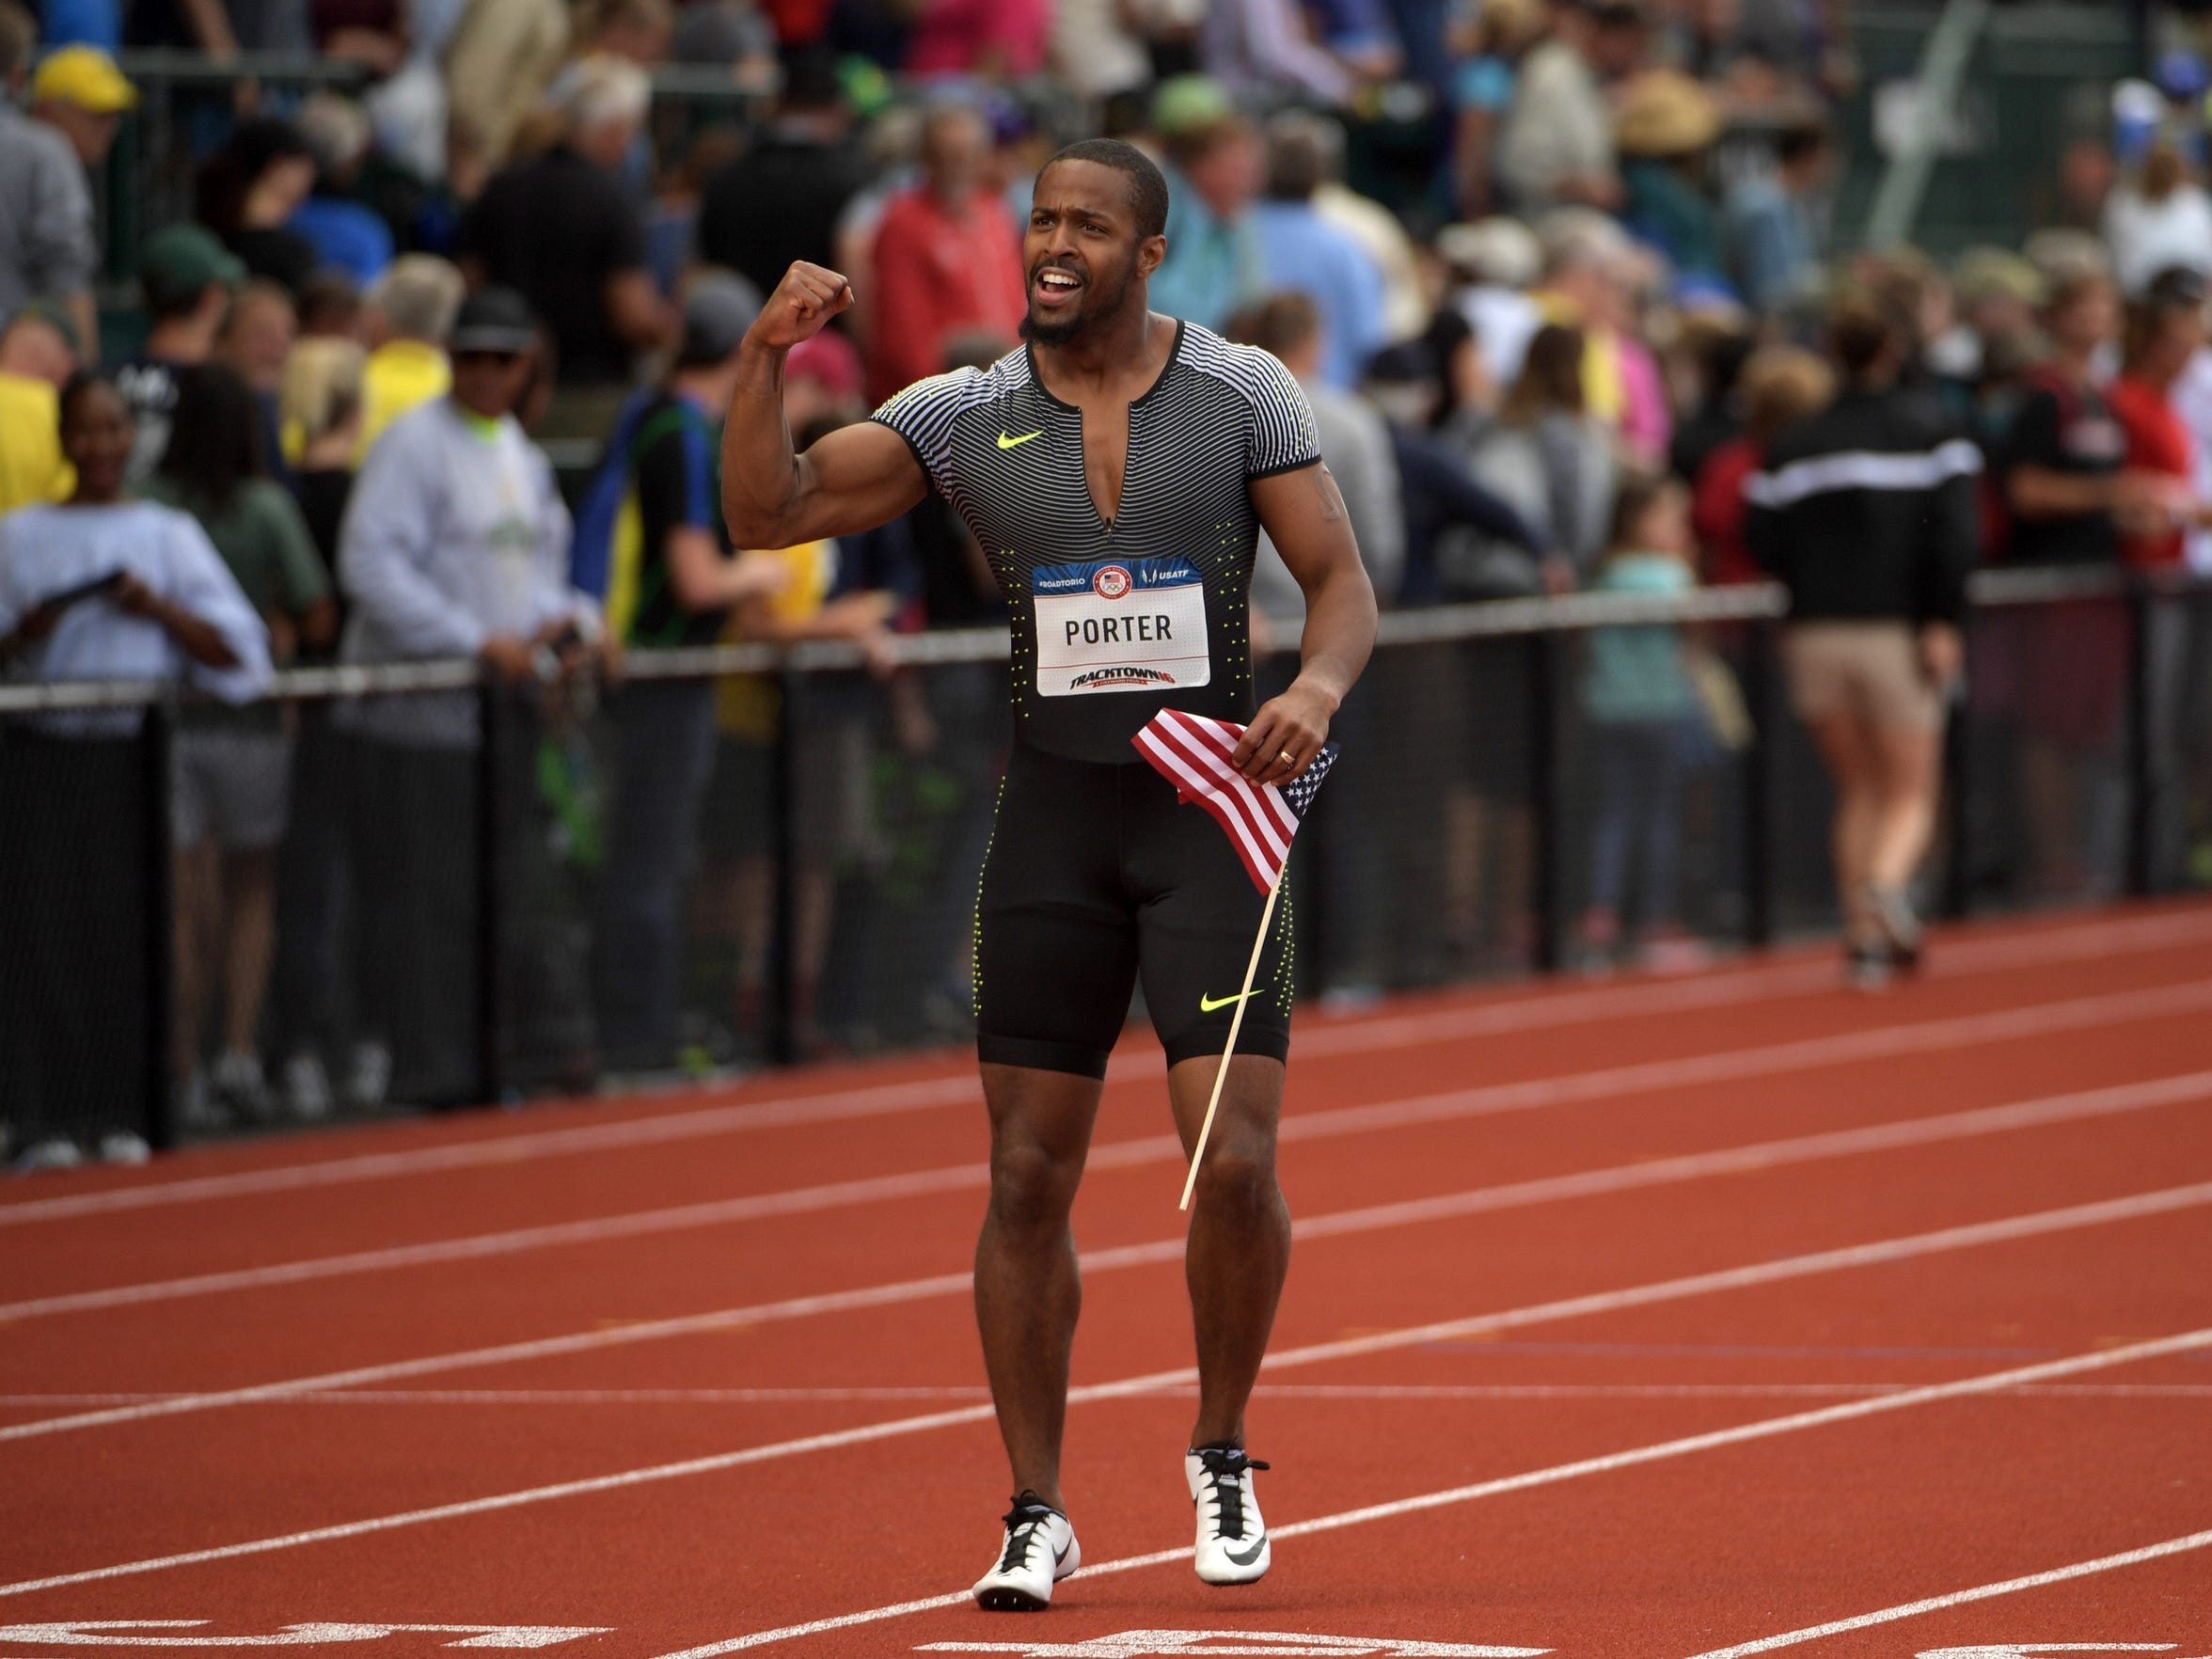 Jeff Porter poses with United States flag after placing